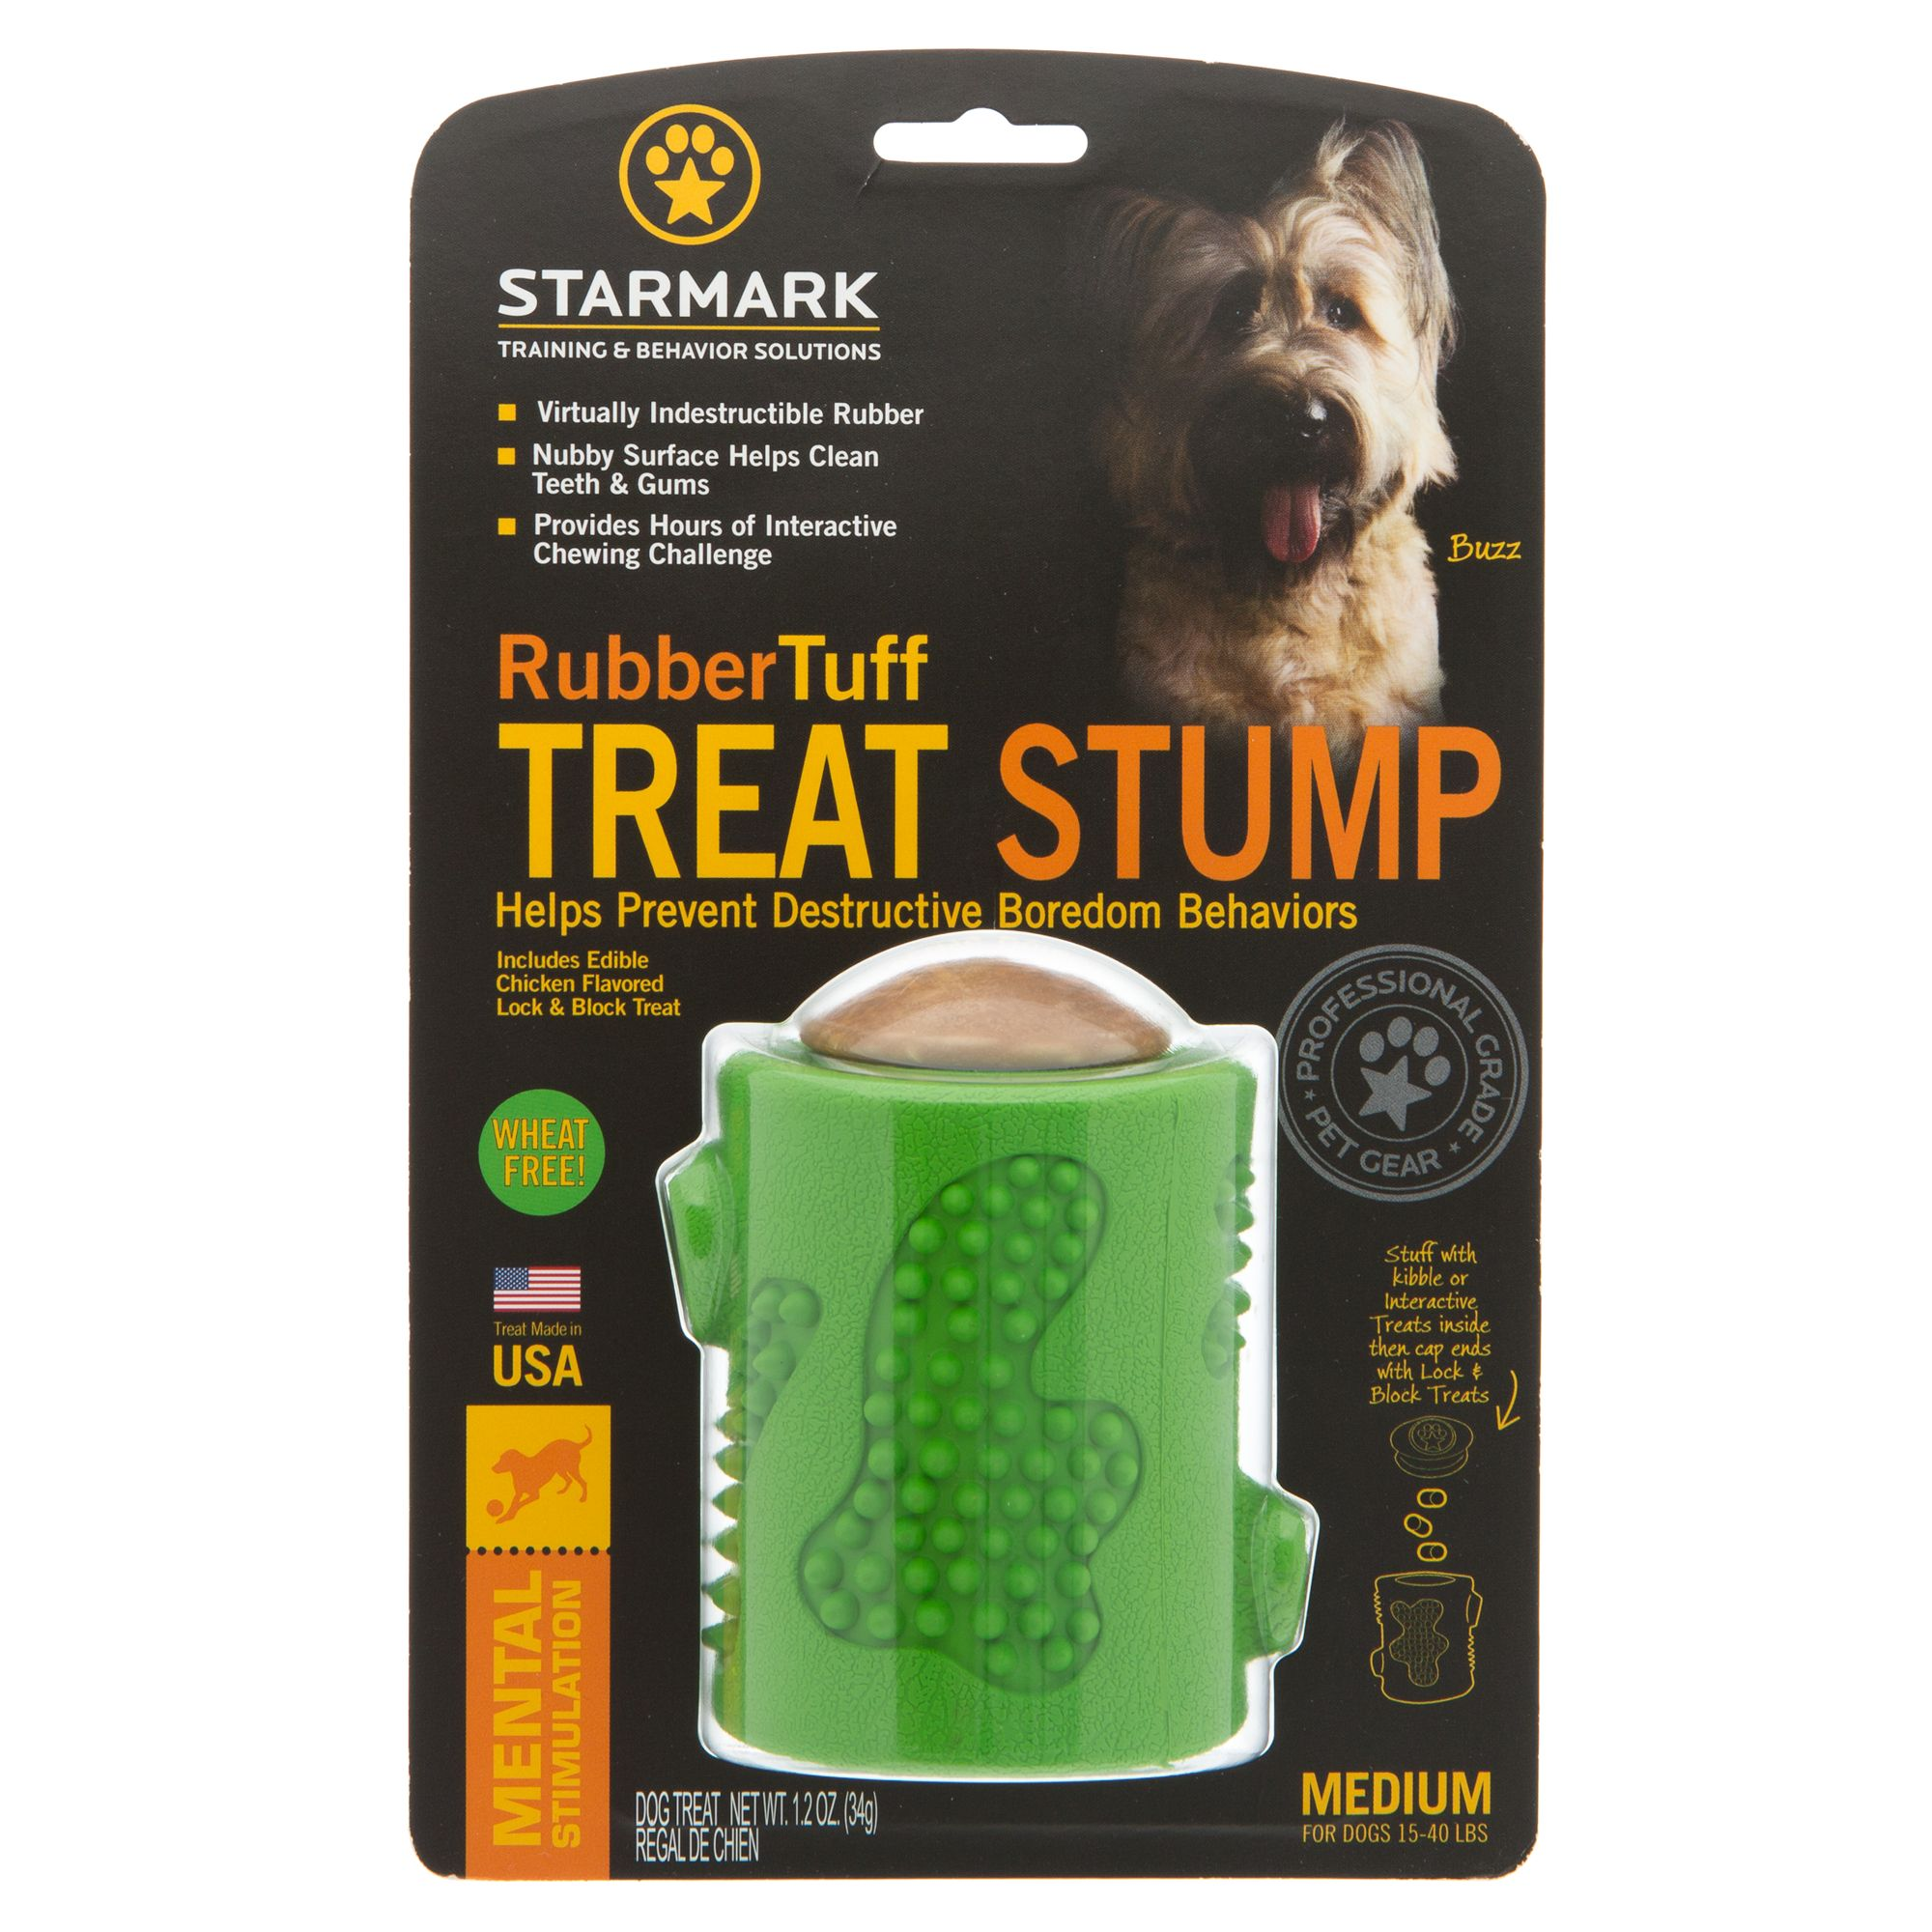 Starmark Rubber Tuff Stump Treat Dog Toy size: Medium 5249086